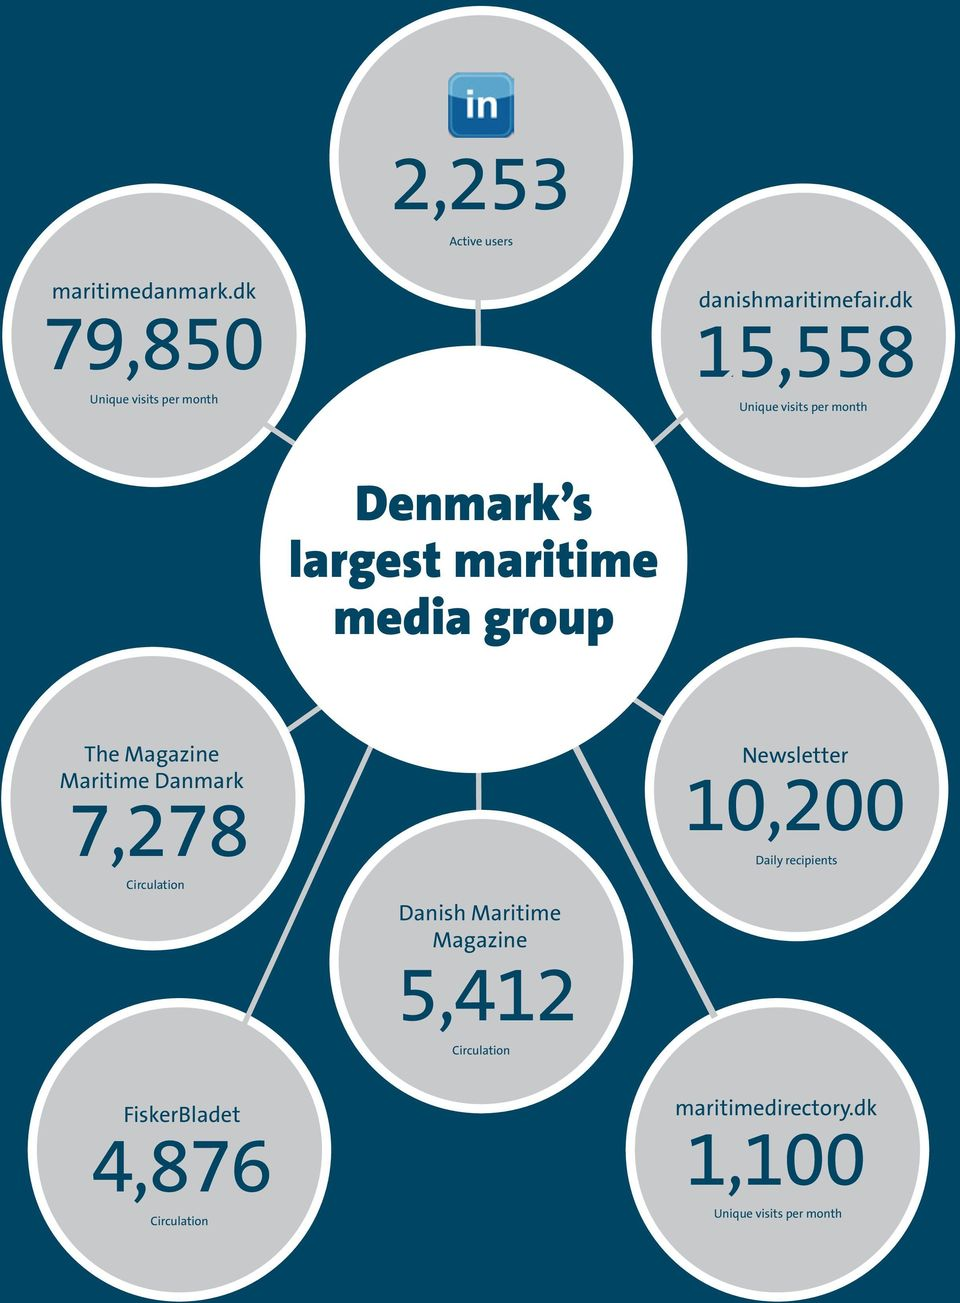 Maritime Danmark 7,278 Circulation Danish Maritime Magazine 5,412 Newsletter 10,200 Daily